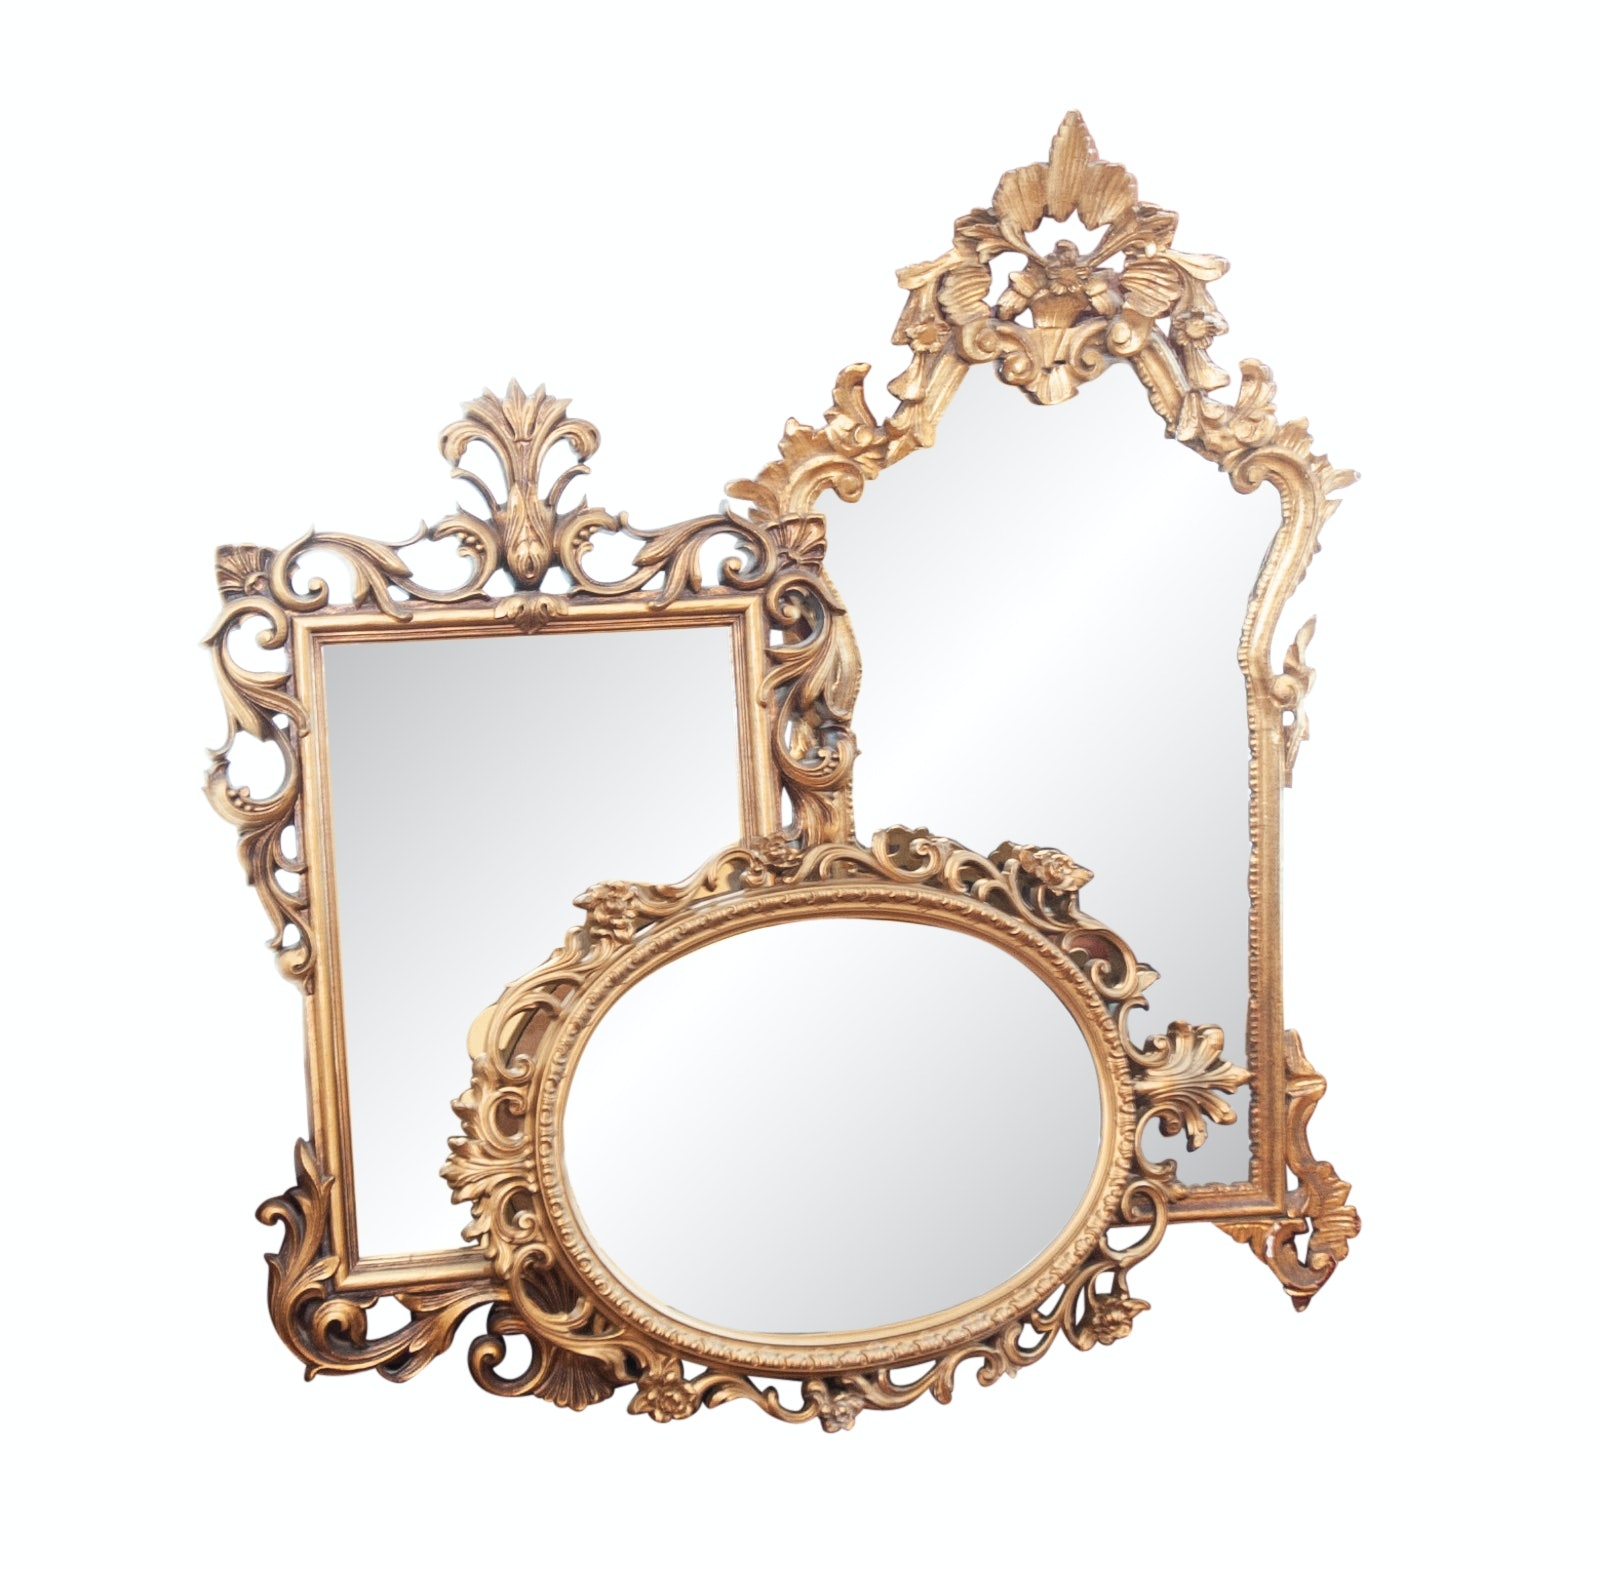 Rococo Revival Style Gilt Wall Mirrors